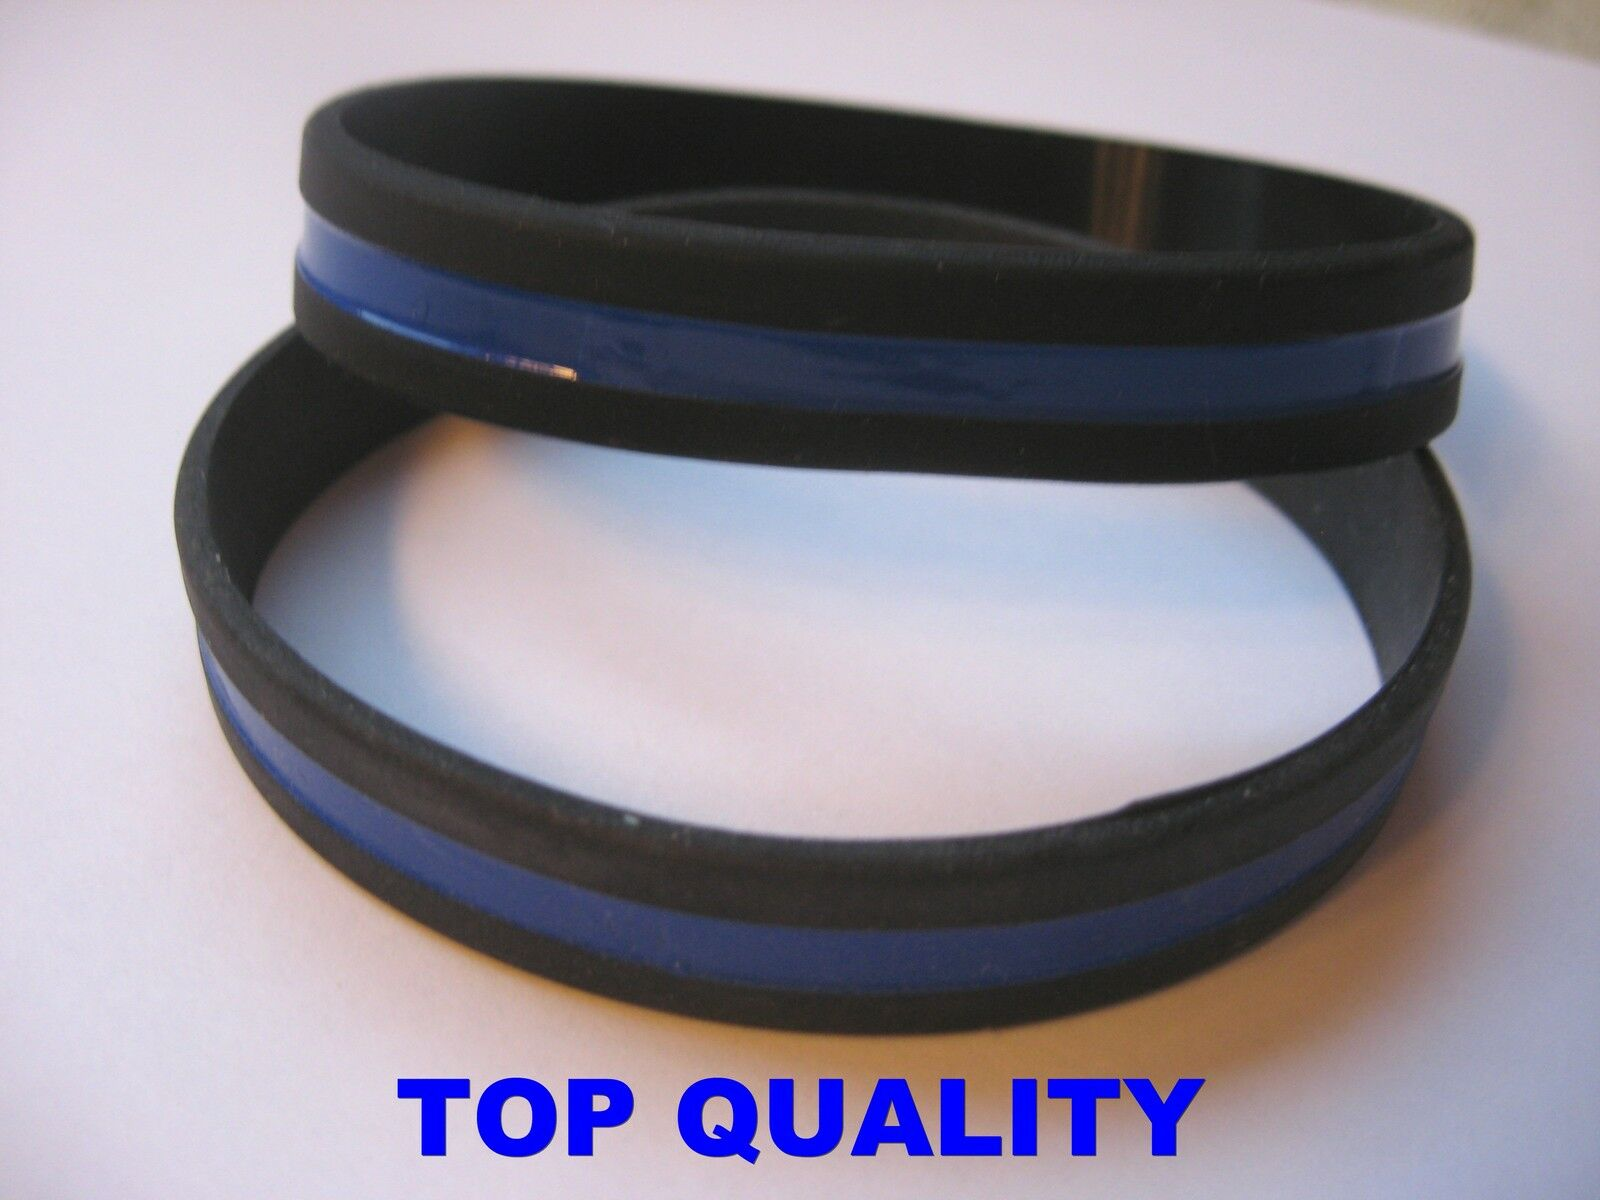 Prodigious Available See More Pcs Thin Blue Line Silicone Thin Blue Line Thin Blue Line Bracelet Small Thin Blue Line Bracelet Tattoo Pcs Thin Blue Line Silicone Thin Blue Line Police bark post Thin Blue Line Bracelet